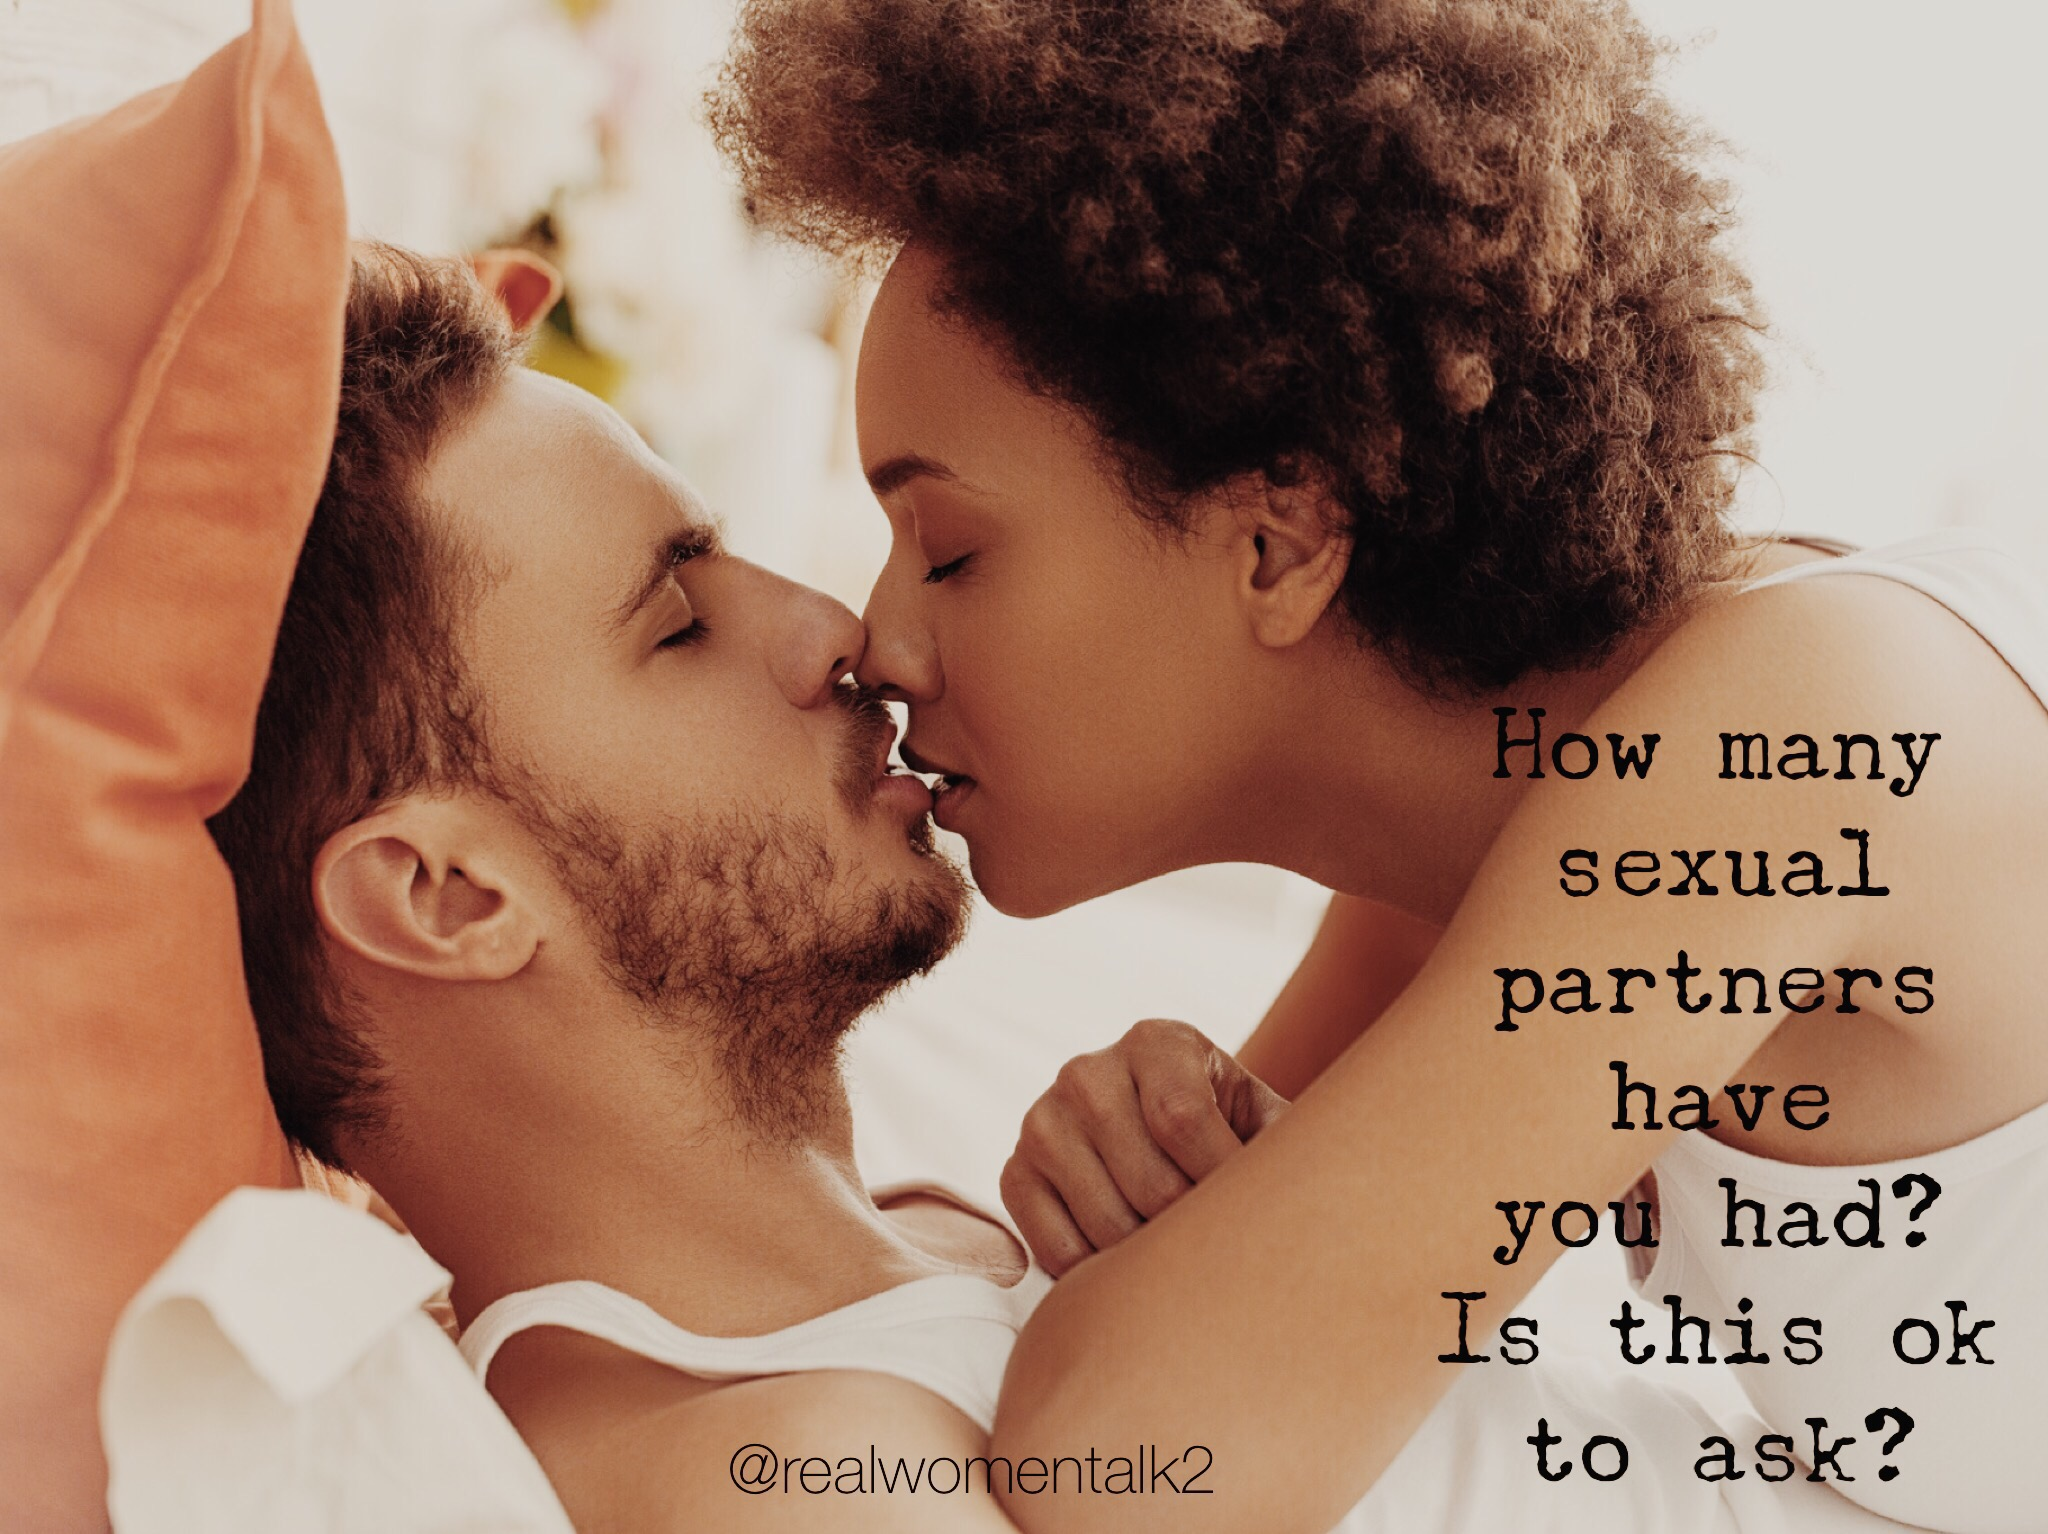 How many sexual partners have you had? Is this ok to ask?